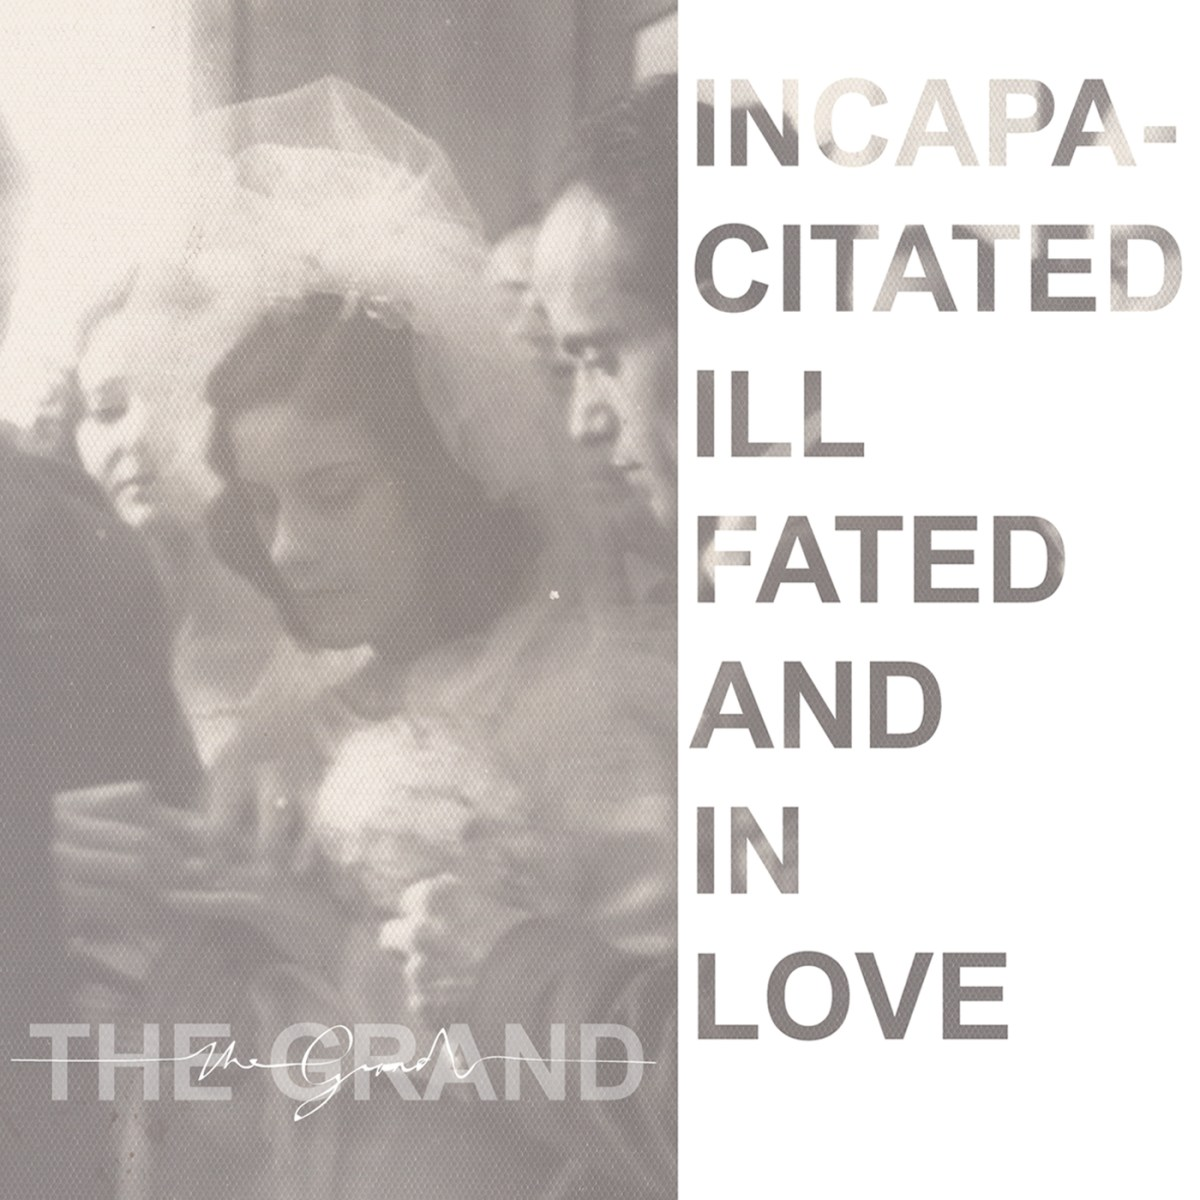 The Grand - Incapacitated, Ill Fated, and In Love (Philophobia Music)